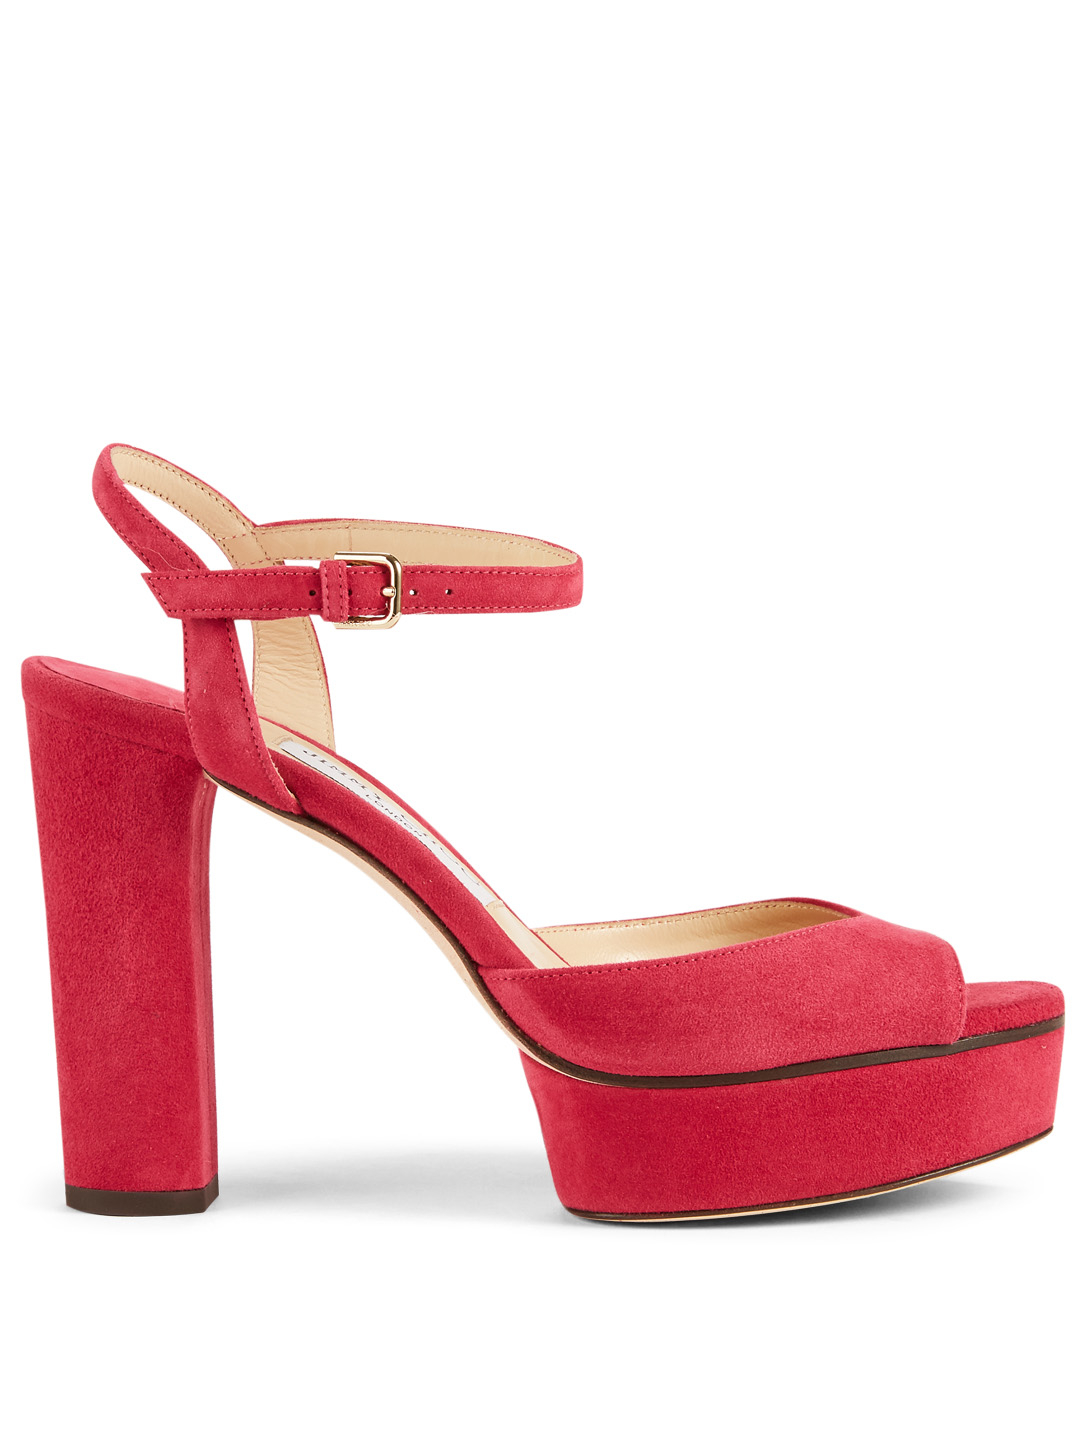 JIMMY CHOO Peachy 105 Suede Platform Sandals Womens Red